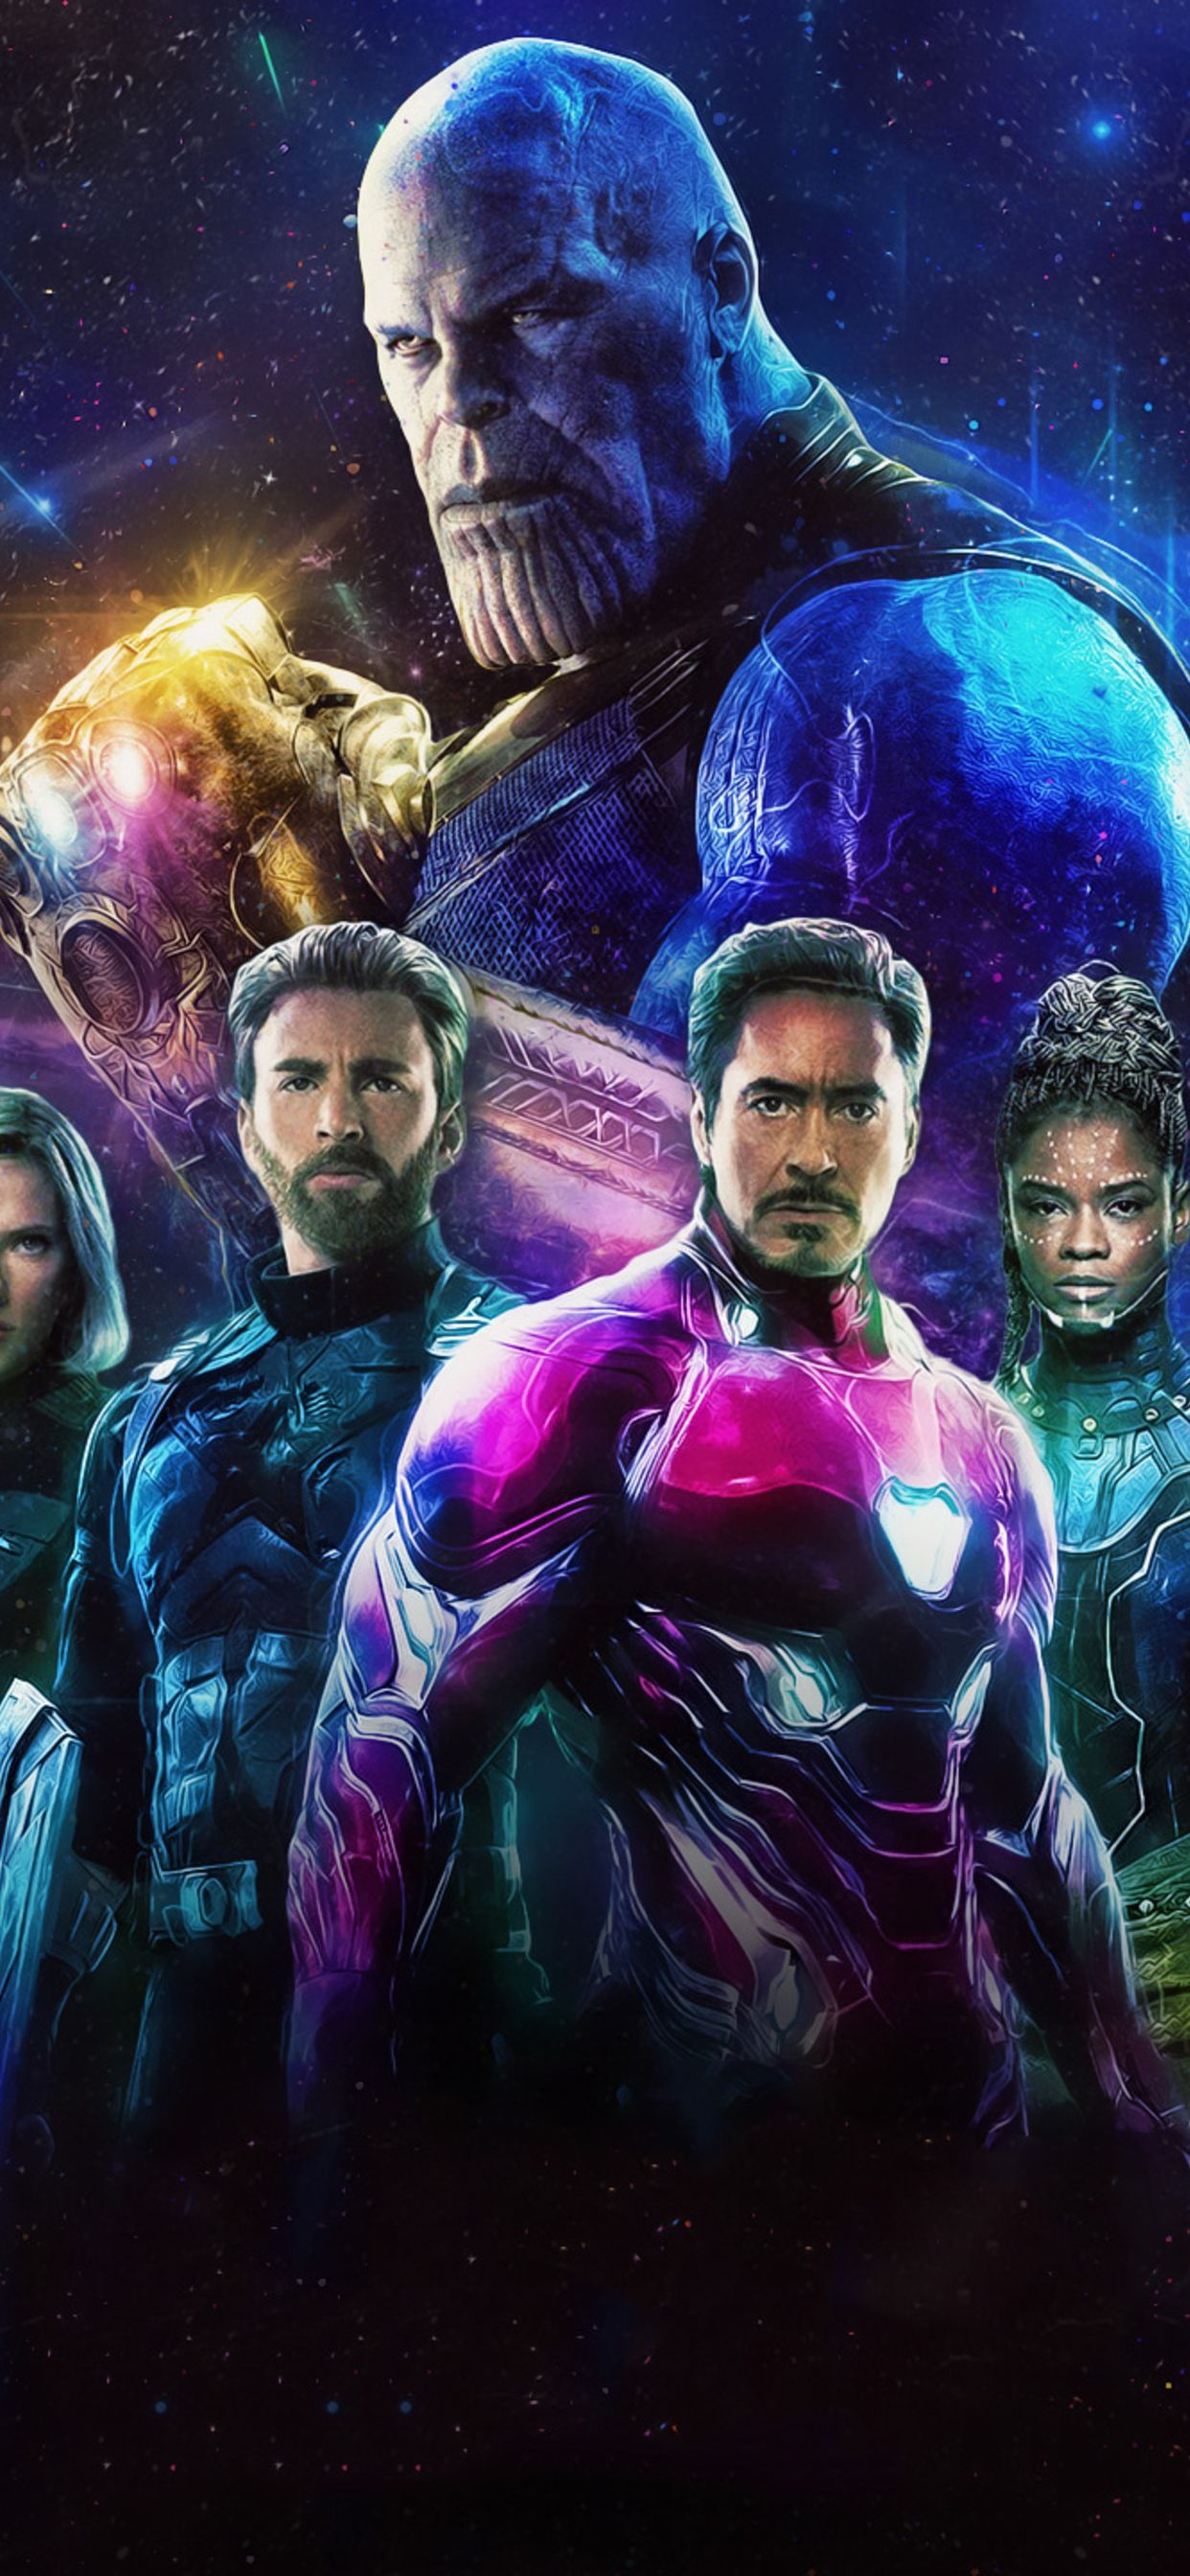 Iphone Xs Max Avengers Wallpaper : iphone, avengers, wallpaper, 1242x2688, Avengers, Infinity, Iphone, Wallpapers,, Images,, Backgrounds,, Photos, An…, Captain, America, Wallpaper,, Movie, Wallpapers